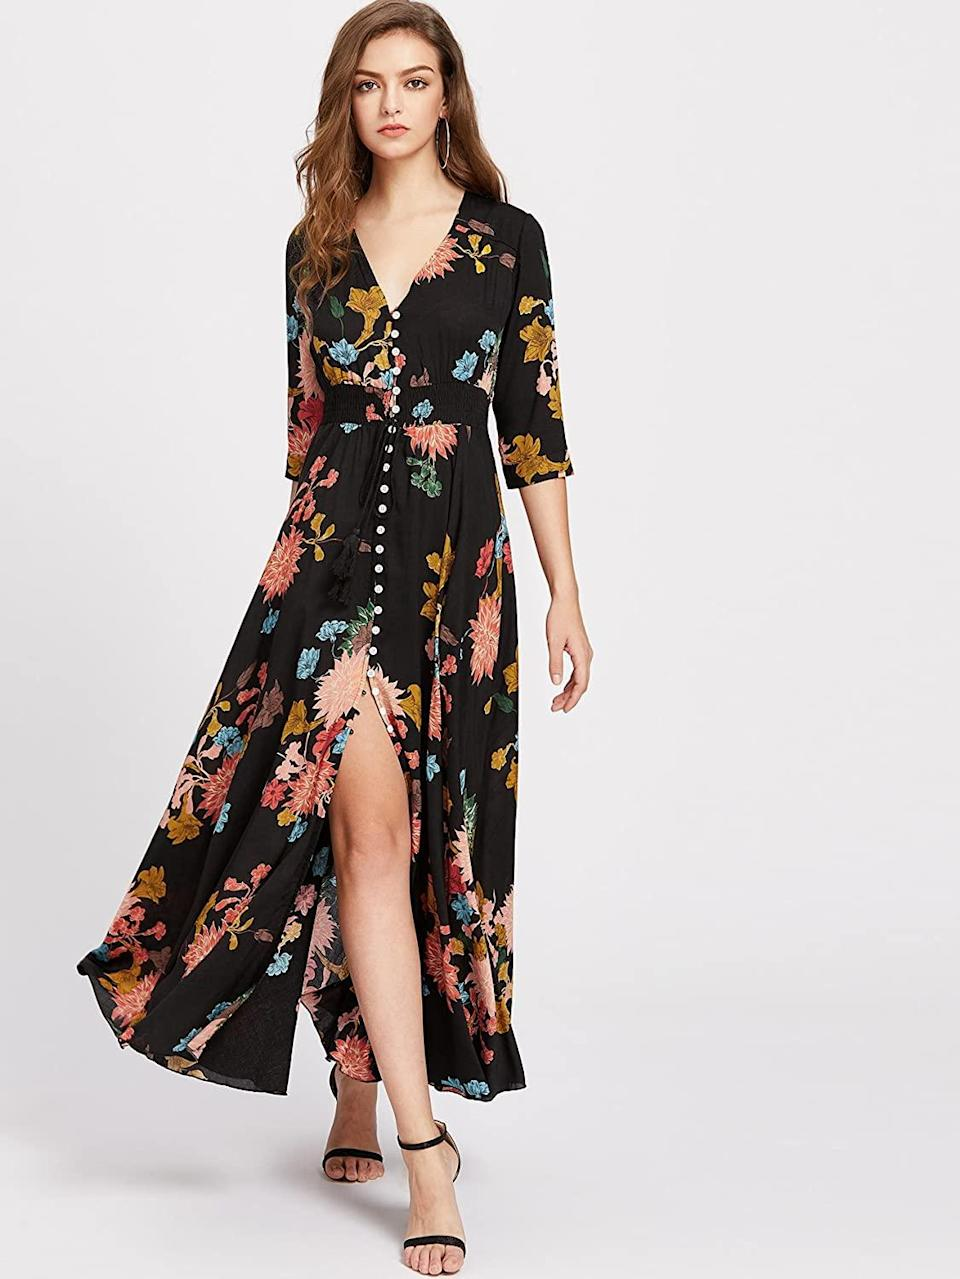 """<br><br><strong>Milumia</strong> Flowy Floral Maxi, $, available at <a href=""""https://amzn.to/3iuc6i4"""" rel=""""nofollow noopener"""" target=""""_blank"""" data-ylk=""""slk:Amazon"""" class=""""link rapid-noclick-resp"""">Amazon</a>"""